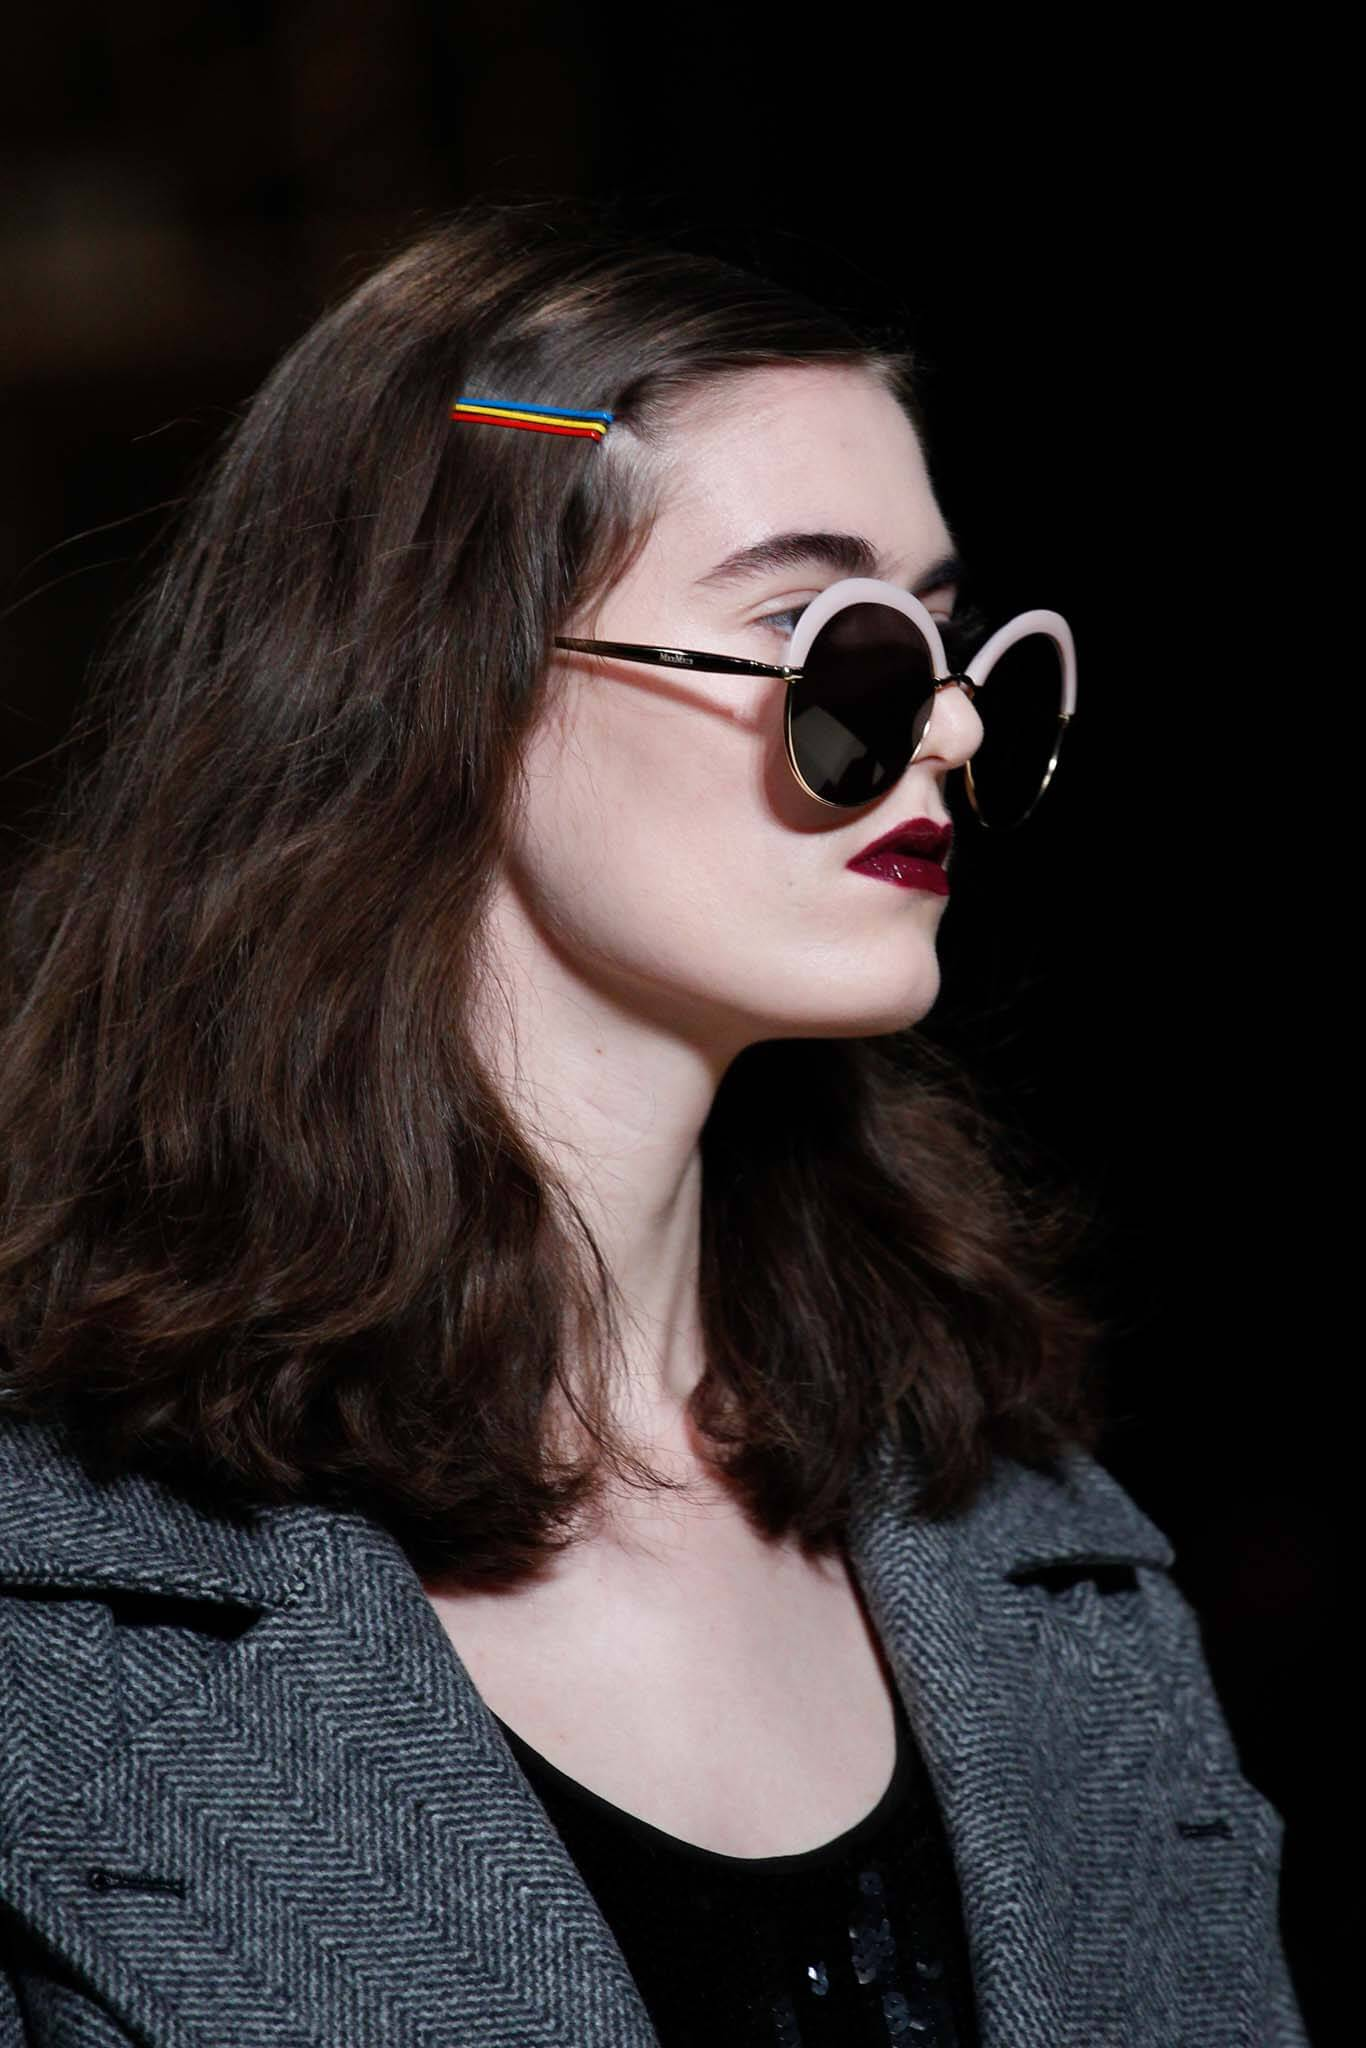 fall hair trends: bobby pin hair accessory